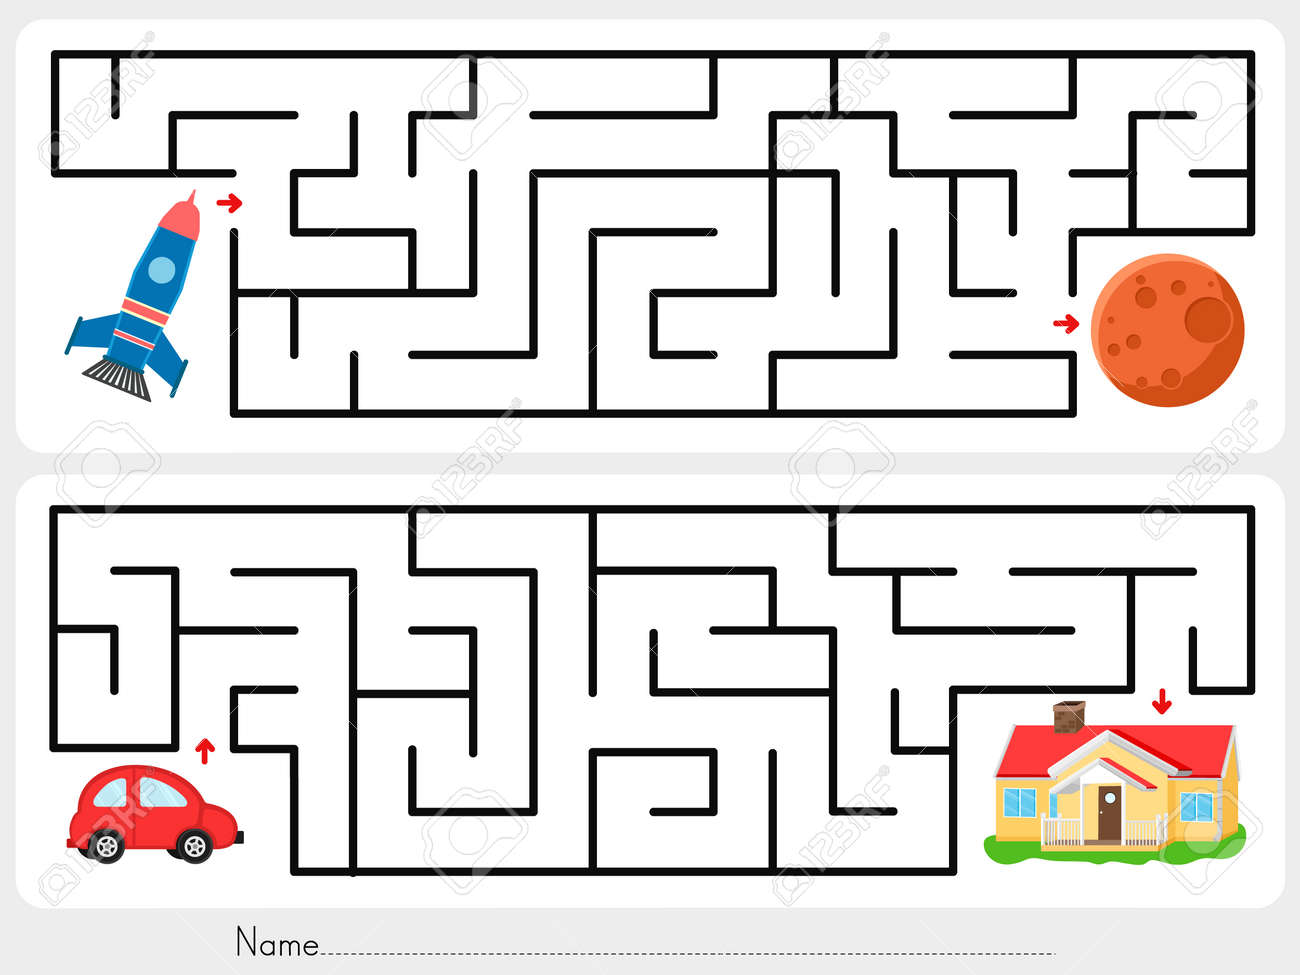 Red Car Game >> Maze Game Help Rocket Find The Way To Mars And Help Red Car